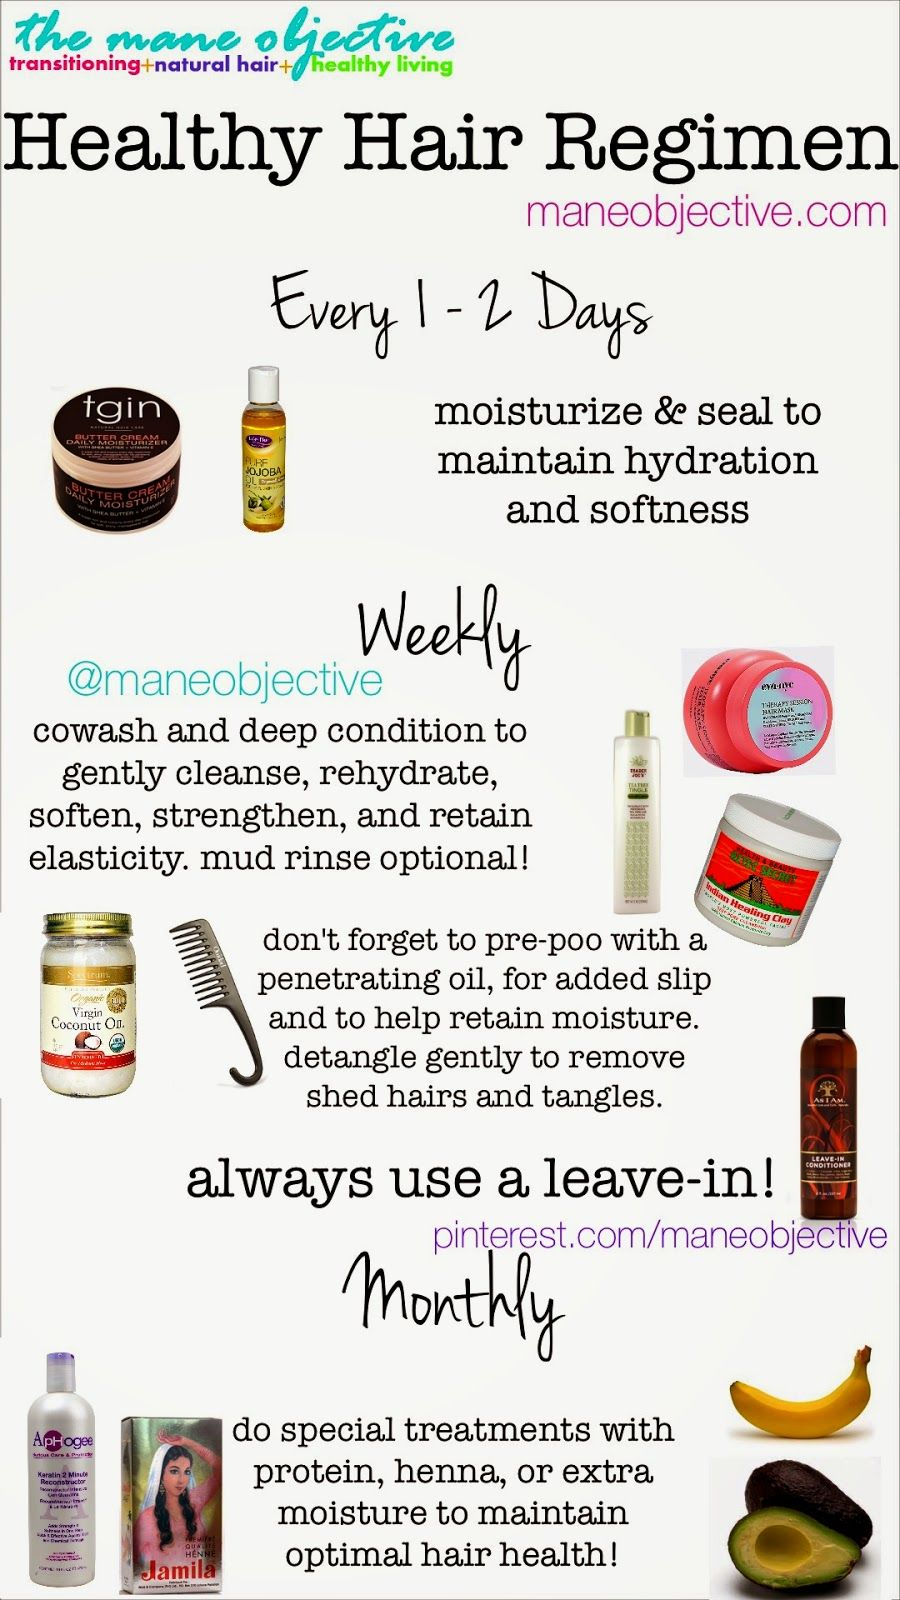 If you're in need of a healthy hair regimen for 2015